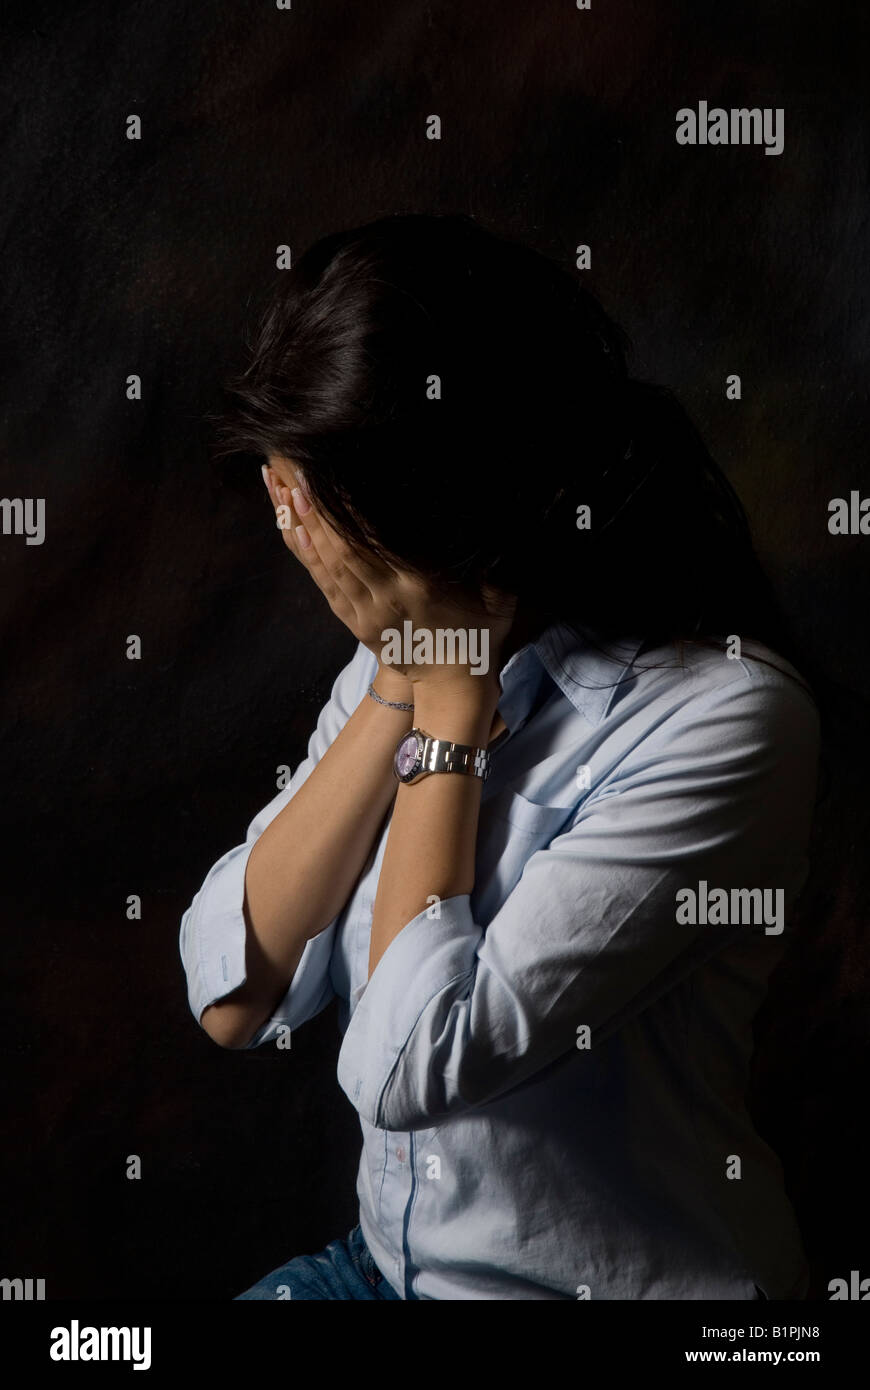 Depressed young woman head in hands against a black background - Stock Image